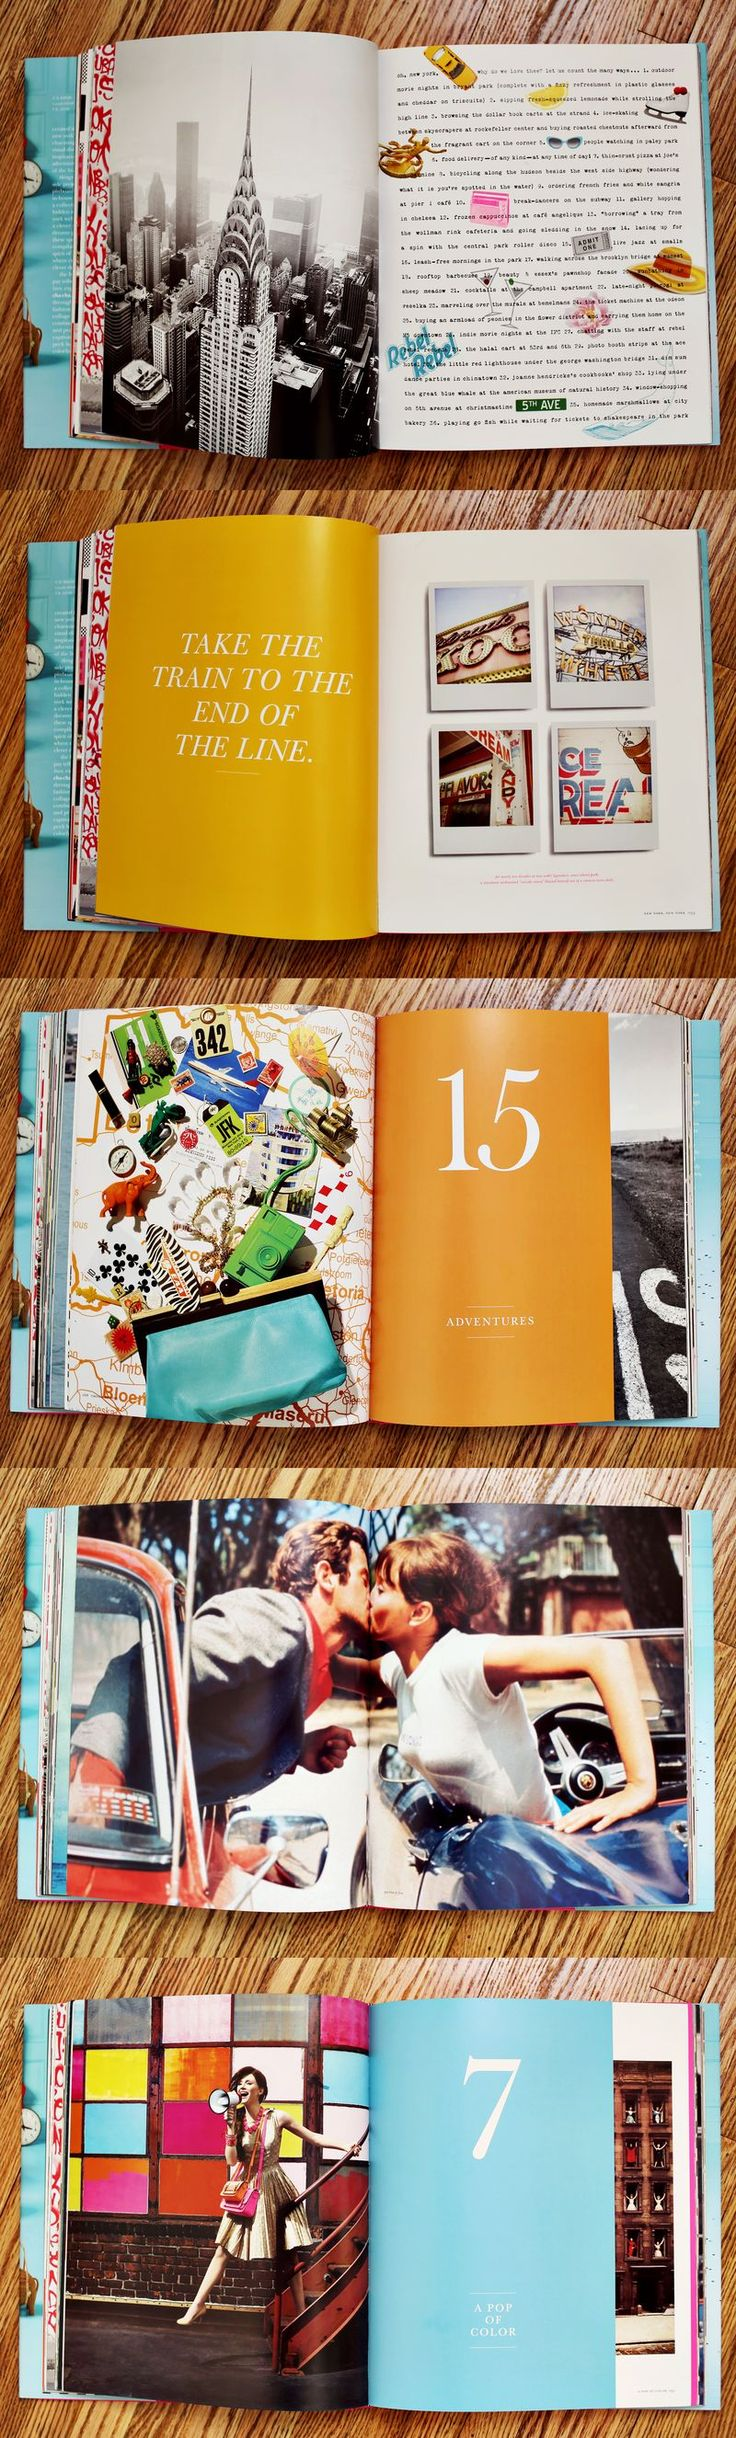 Kate Spade Things We Love Book: what do you think of the kissing spread @Tara Cunningham-Keator?